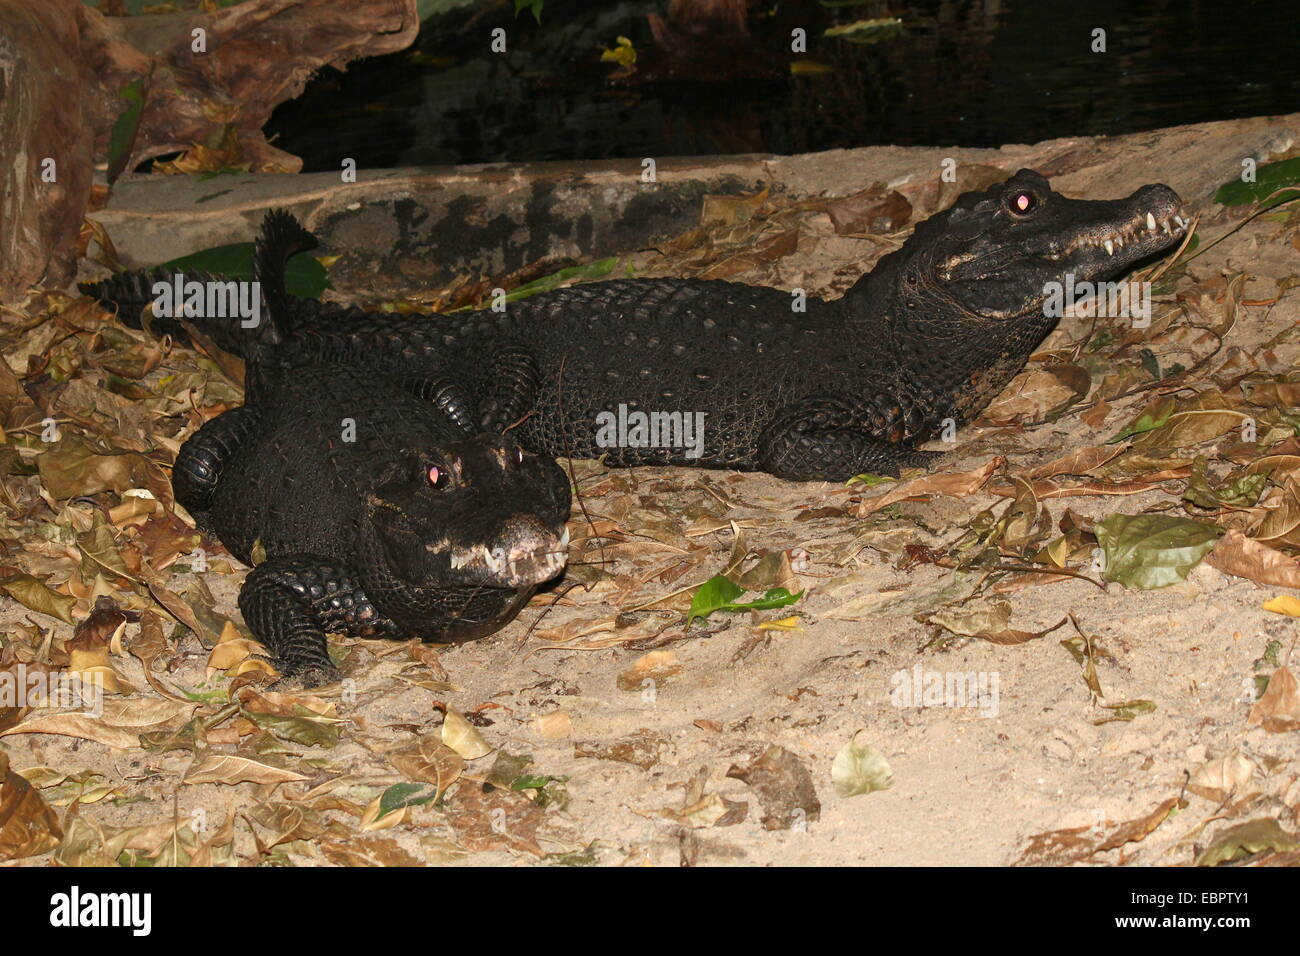 Two West-African Dwarf Crocodiles (Osteolaemus tetraspis)  a.k.a. Broad-snouted or Bony crocodile Stock Photo